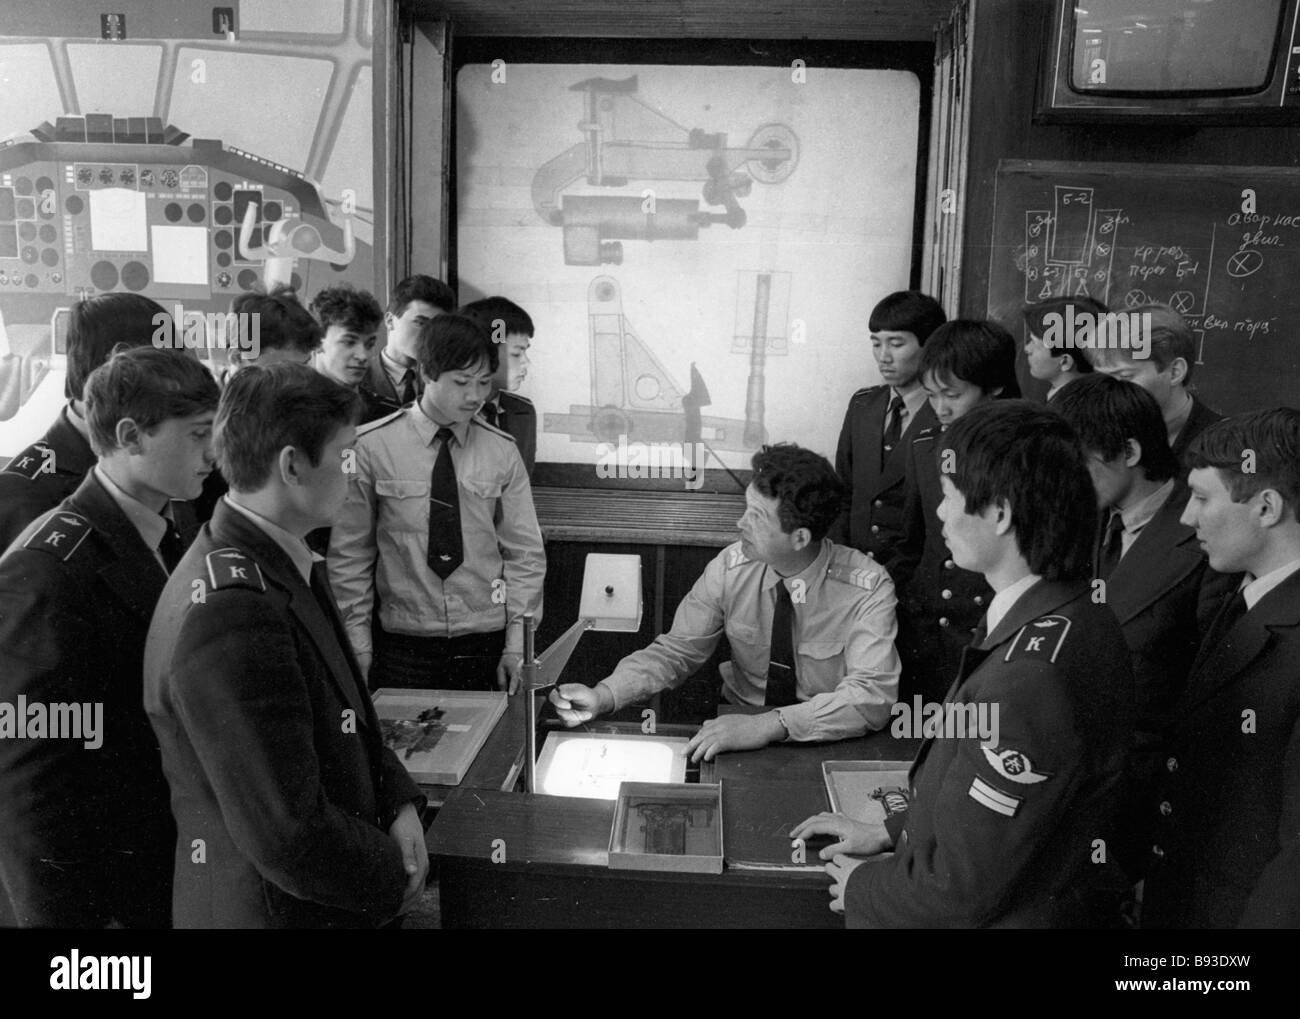 Students of the Yegorievsk Civil Aviation Technicians College listening to the instructor at airframe classes - Stock Image